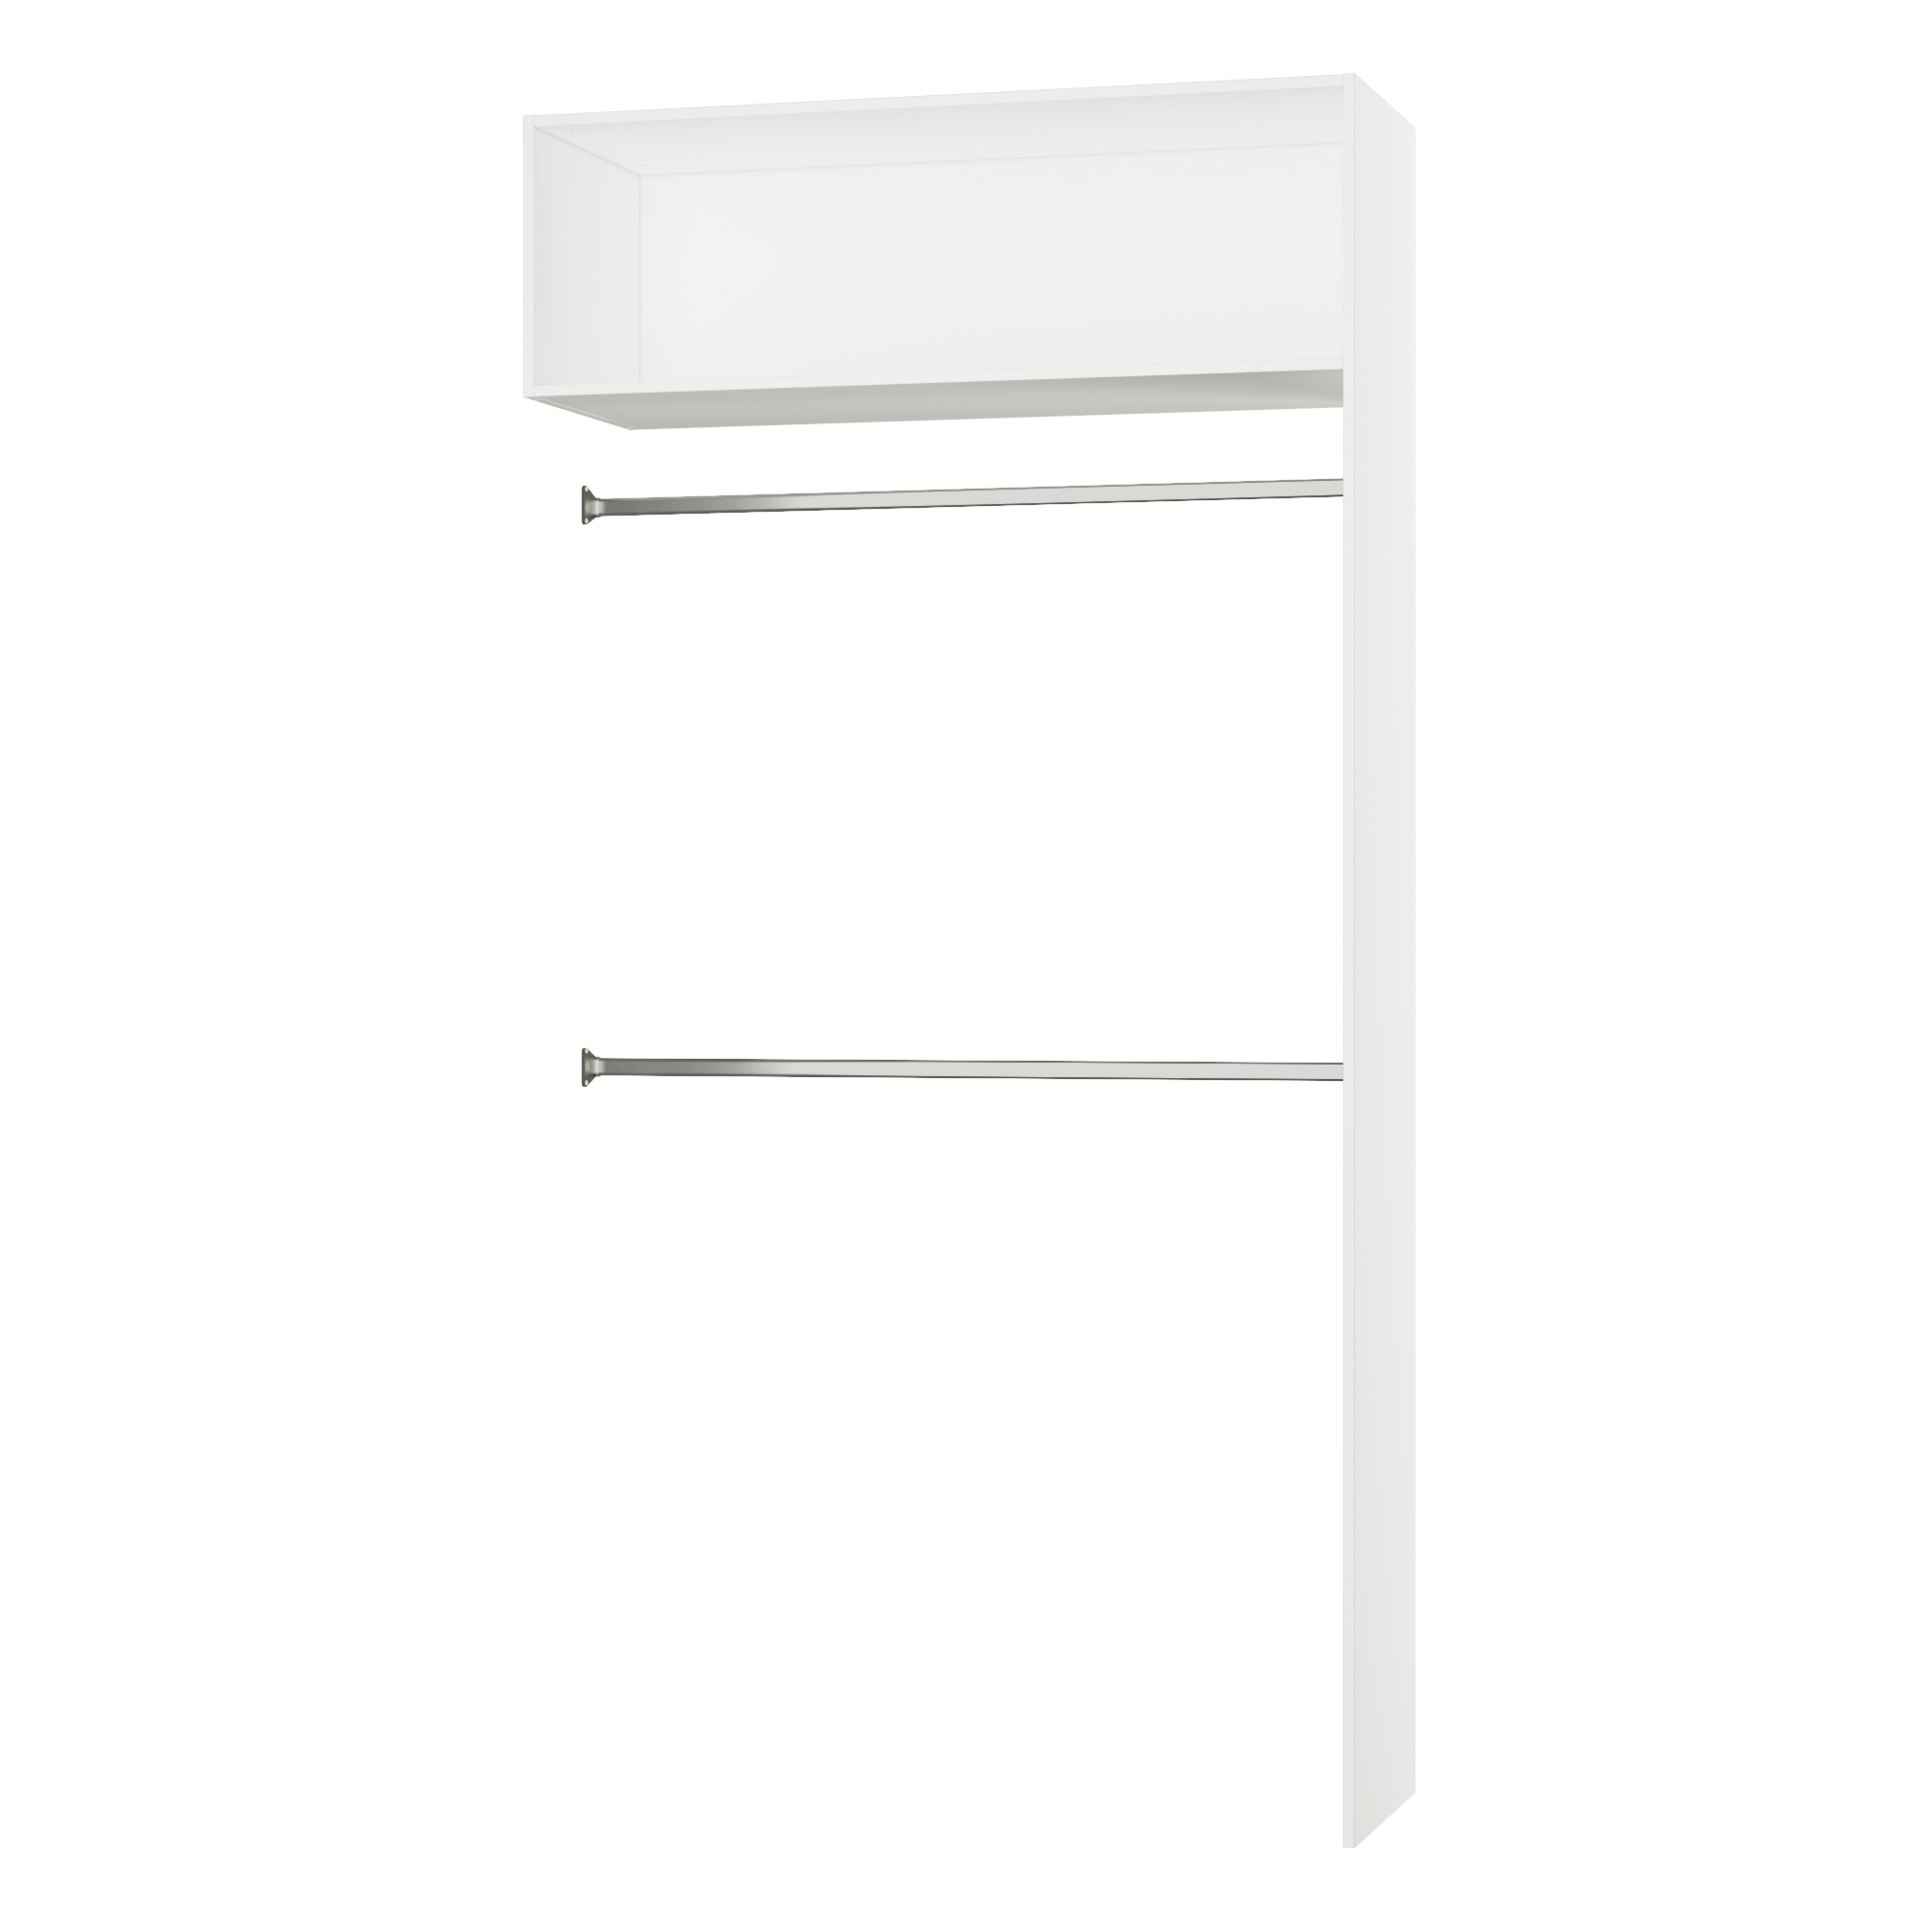 Penderie Extensible Spaceo Home Effet Chene Naturel H 240 X L 120 X P 45 Cm Leroy Merlin